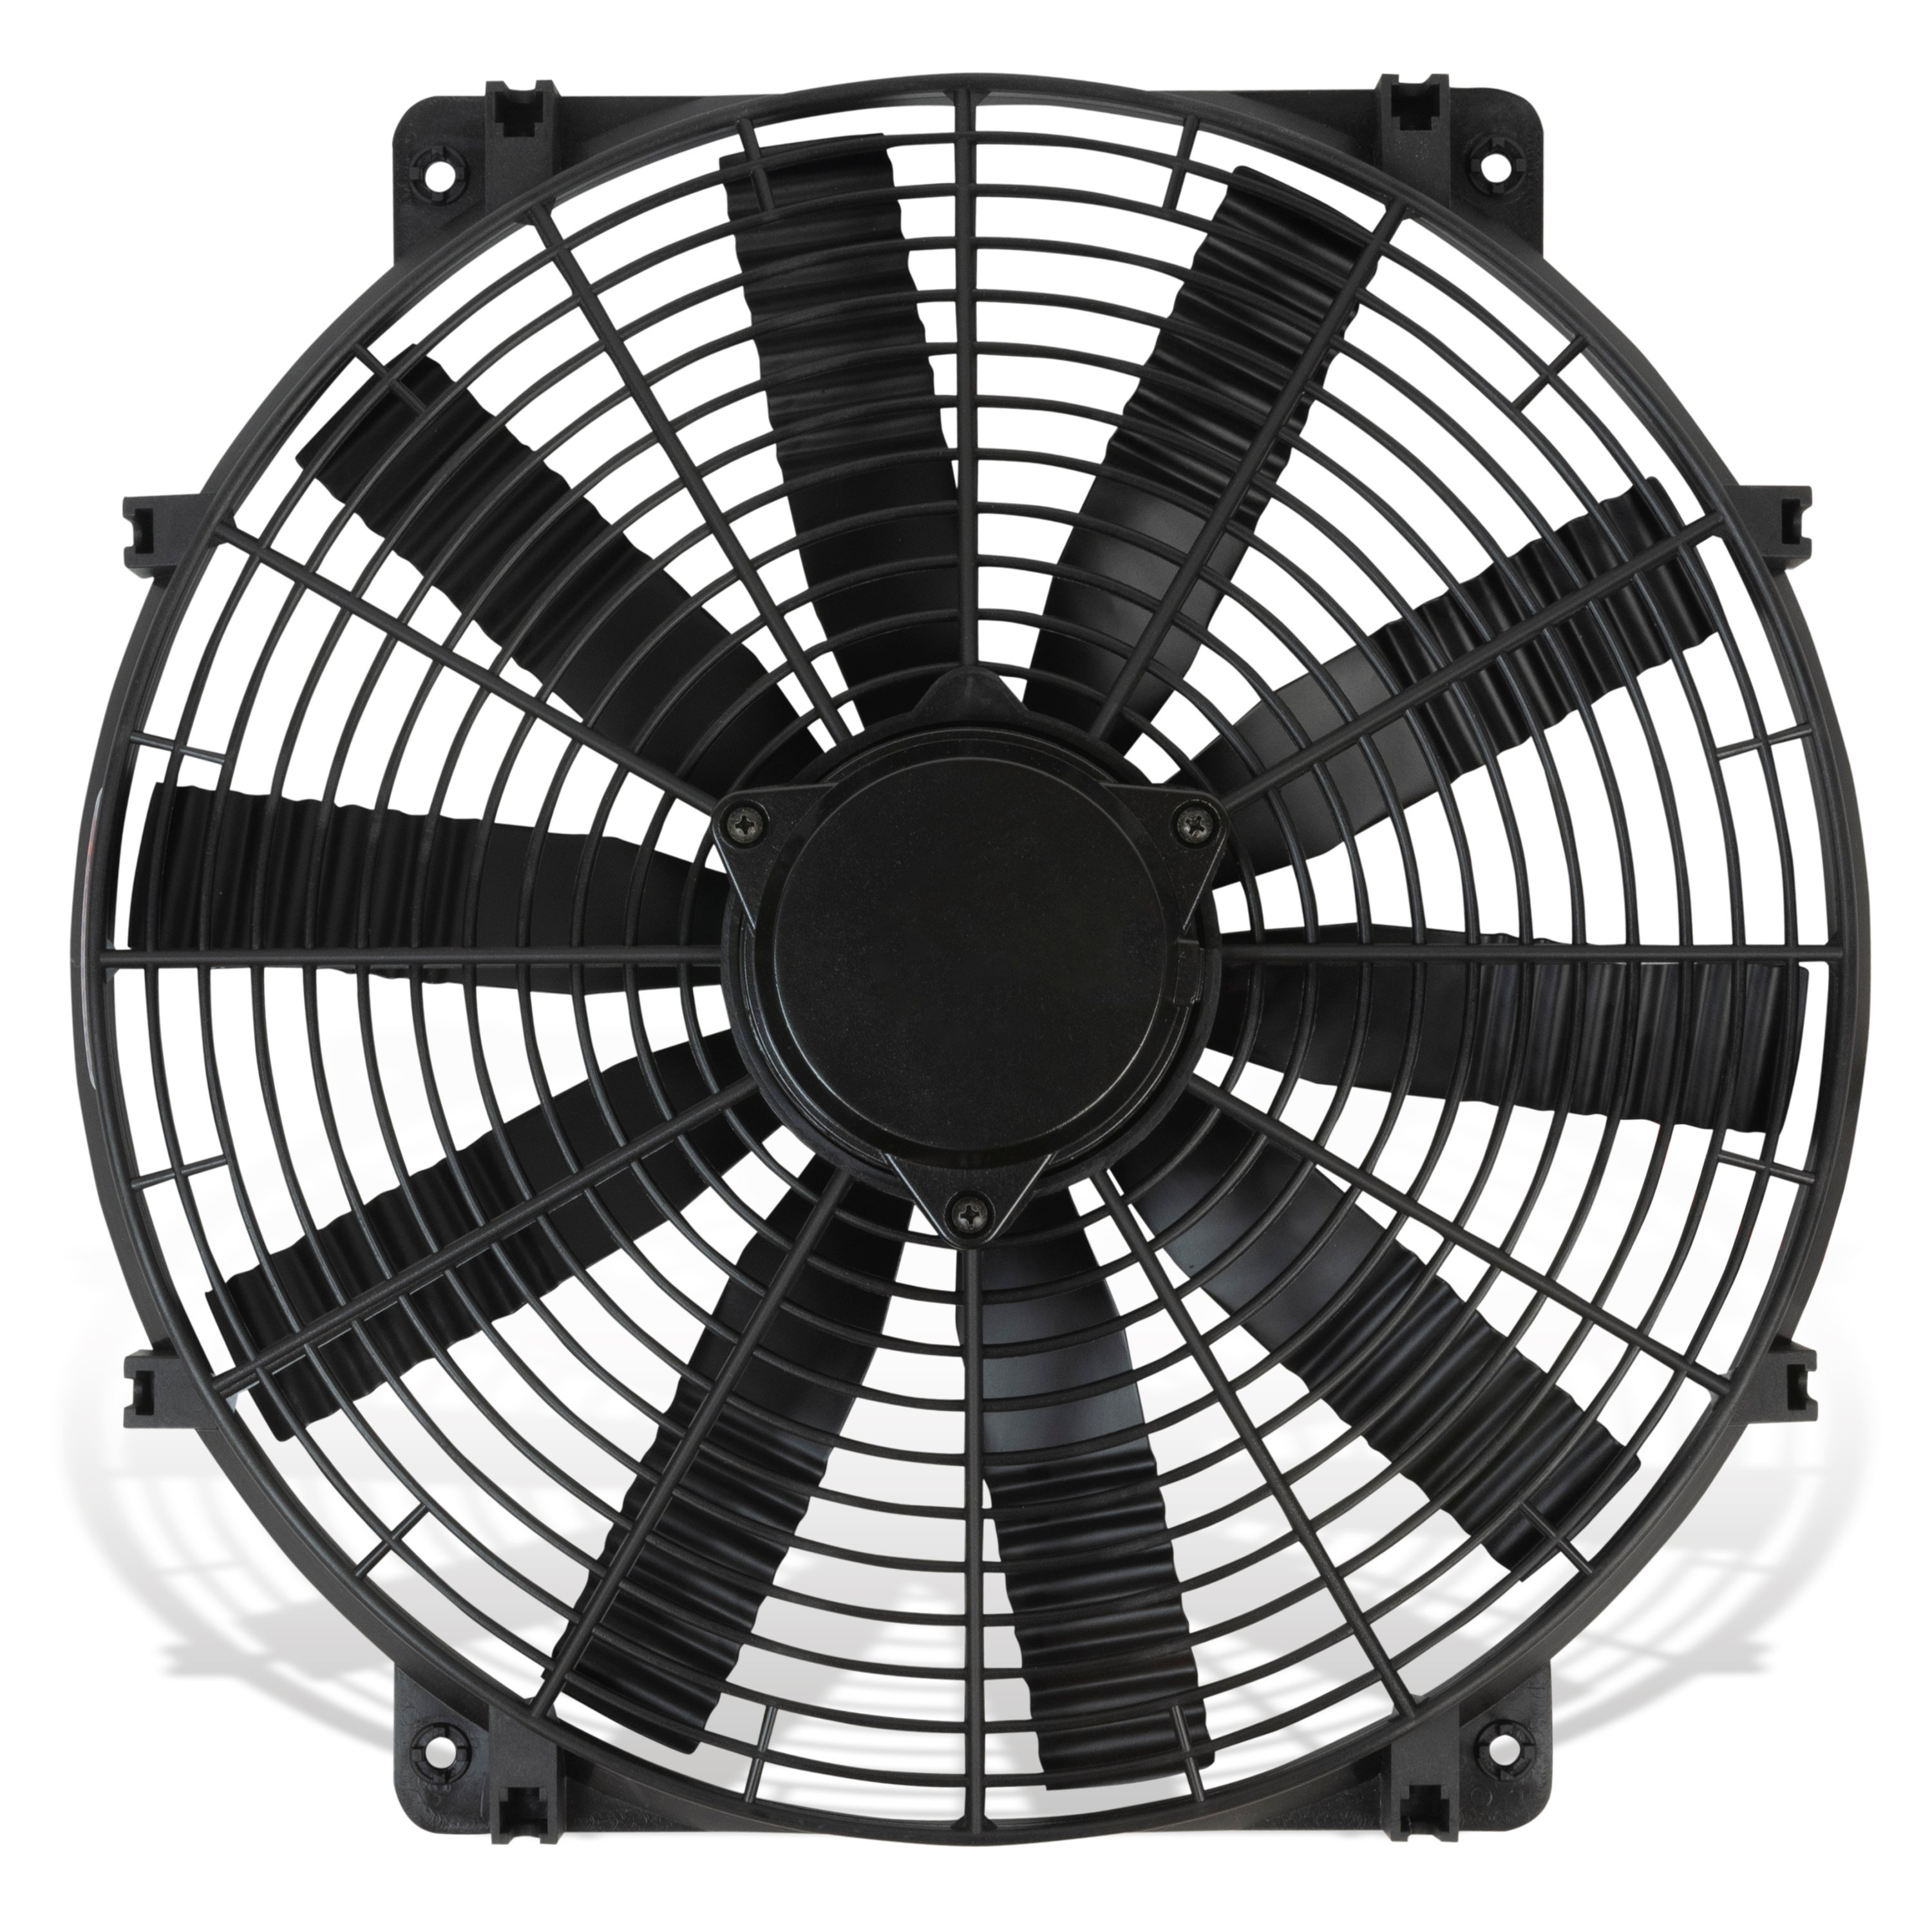 3 000 cfm flex wave lo boy electric fan from flex a lite Simple DC Motor with an output of 3 000 cfm you might imagine a really big electric motor wrong